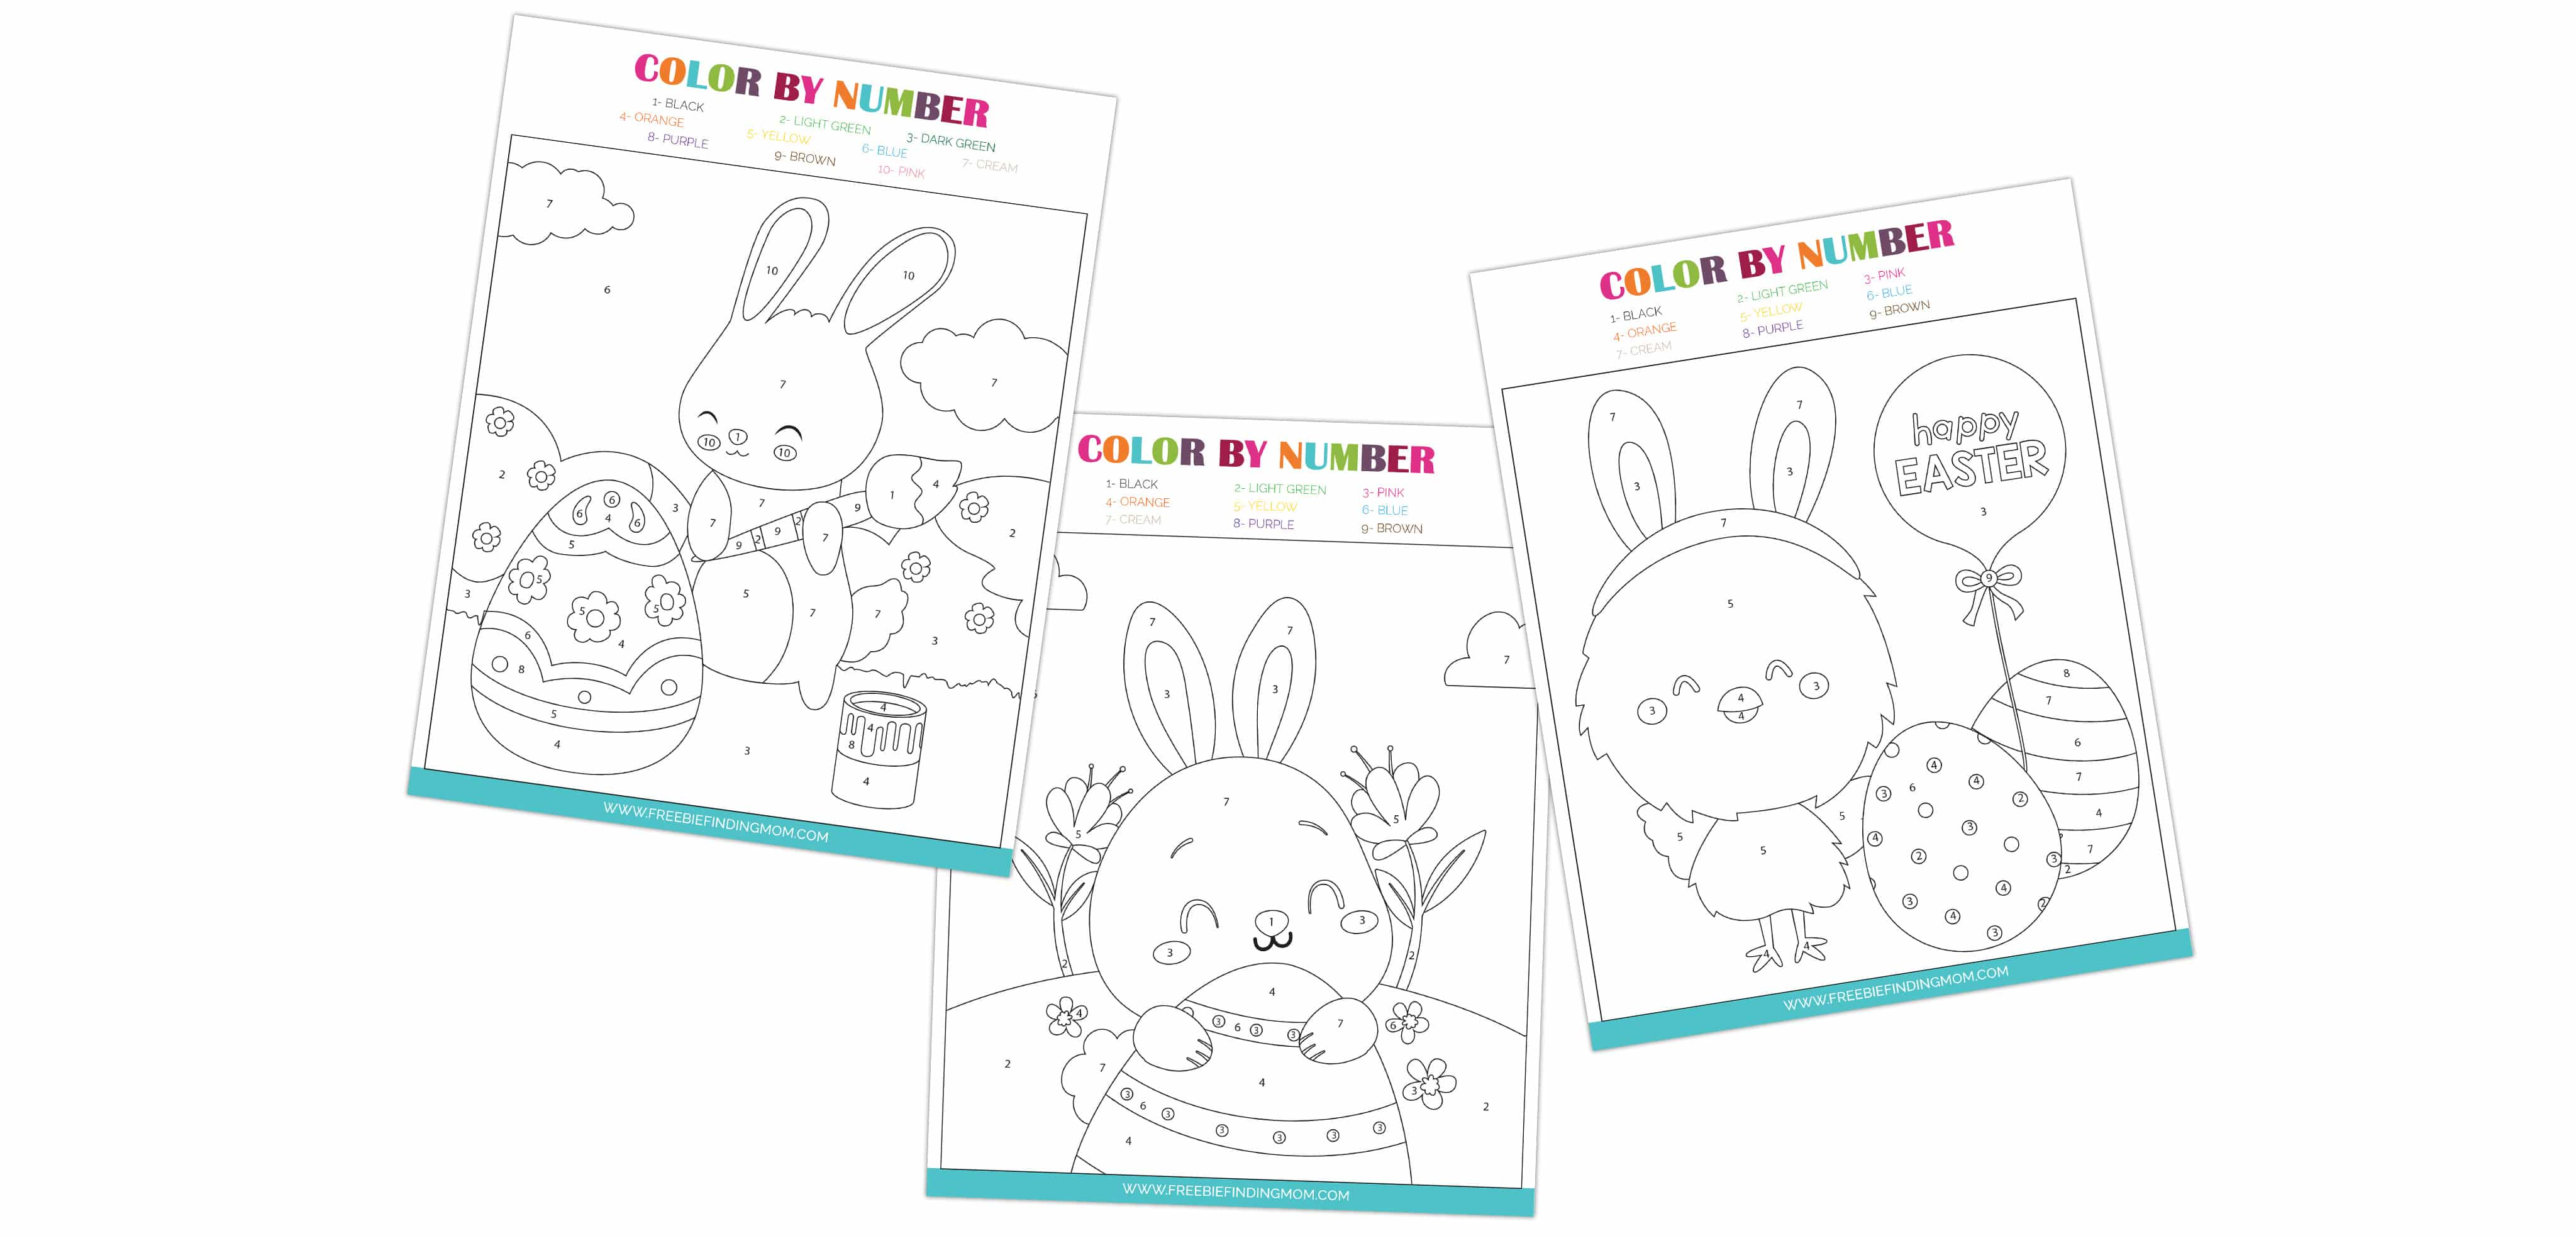 Need more spring color by number inspiration? Check out these free Easter color by number printables!